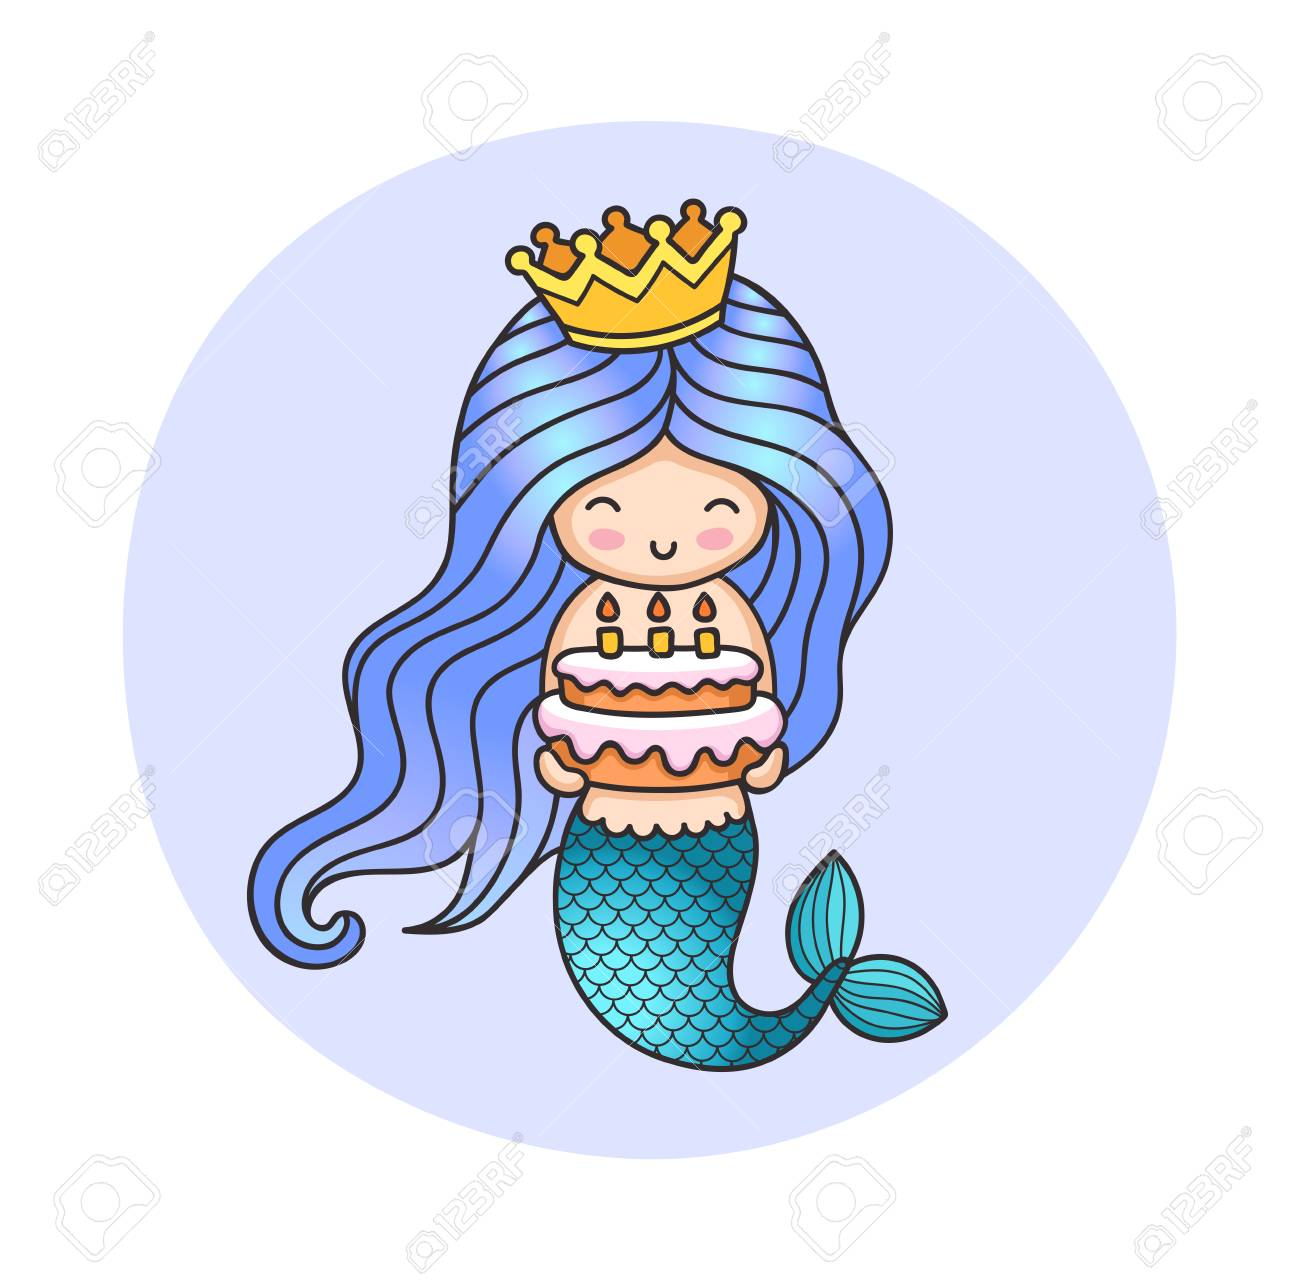 Little Happy Princess Mermaid Holding A Birthday Cake Cute Cartoon Character Illustration For